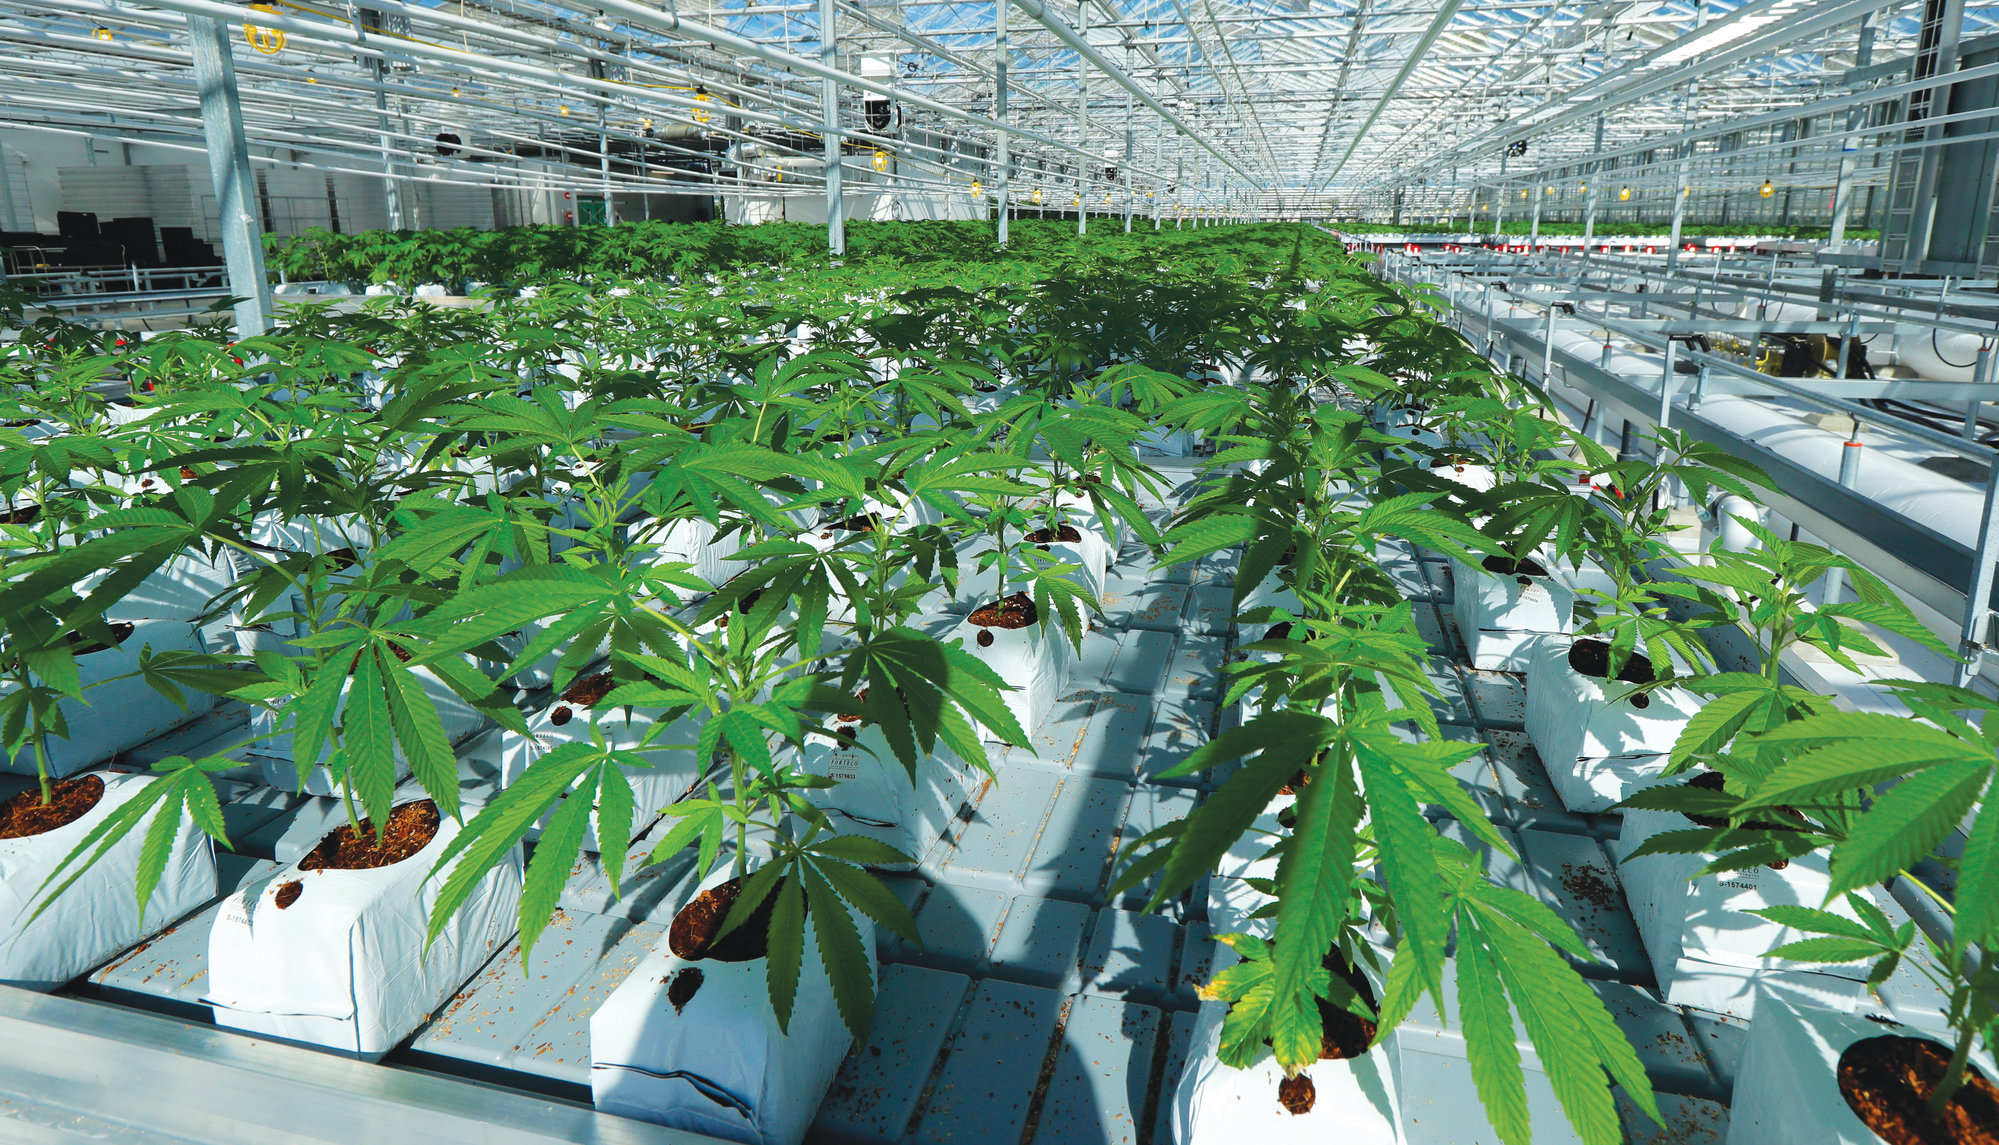 THE ASSOCIATED PRESSMarijuana plants are shown growing in a massive tomato greenhouse being renovated to grow pot in Delta, British Columbia, that is operated by Pure Sunfarms, a joint venture between tomato grower Village Farms International and a licensed medical marijuana producer, Emerald Health Therapeutics. On Oct. 17, Canada will become the second and largest country with a legal national marijuana marketplace.